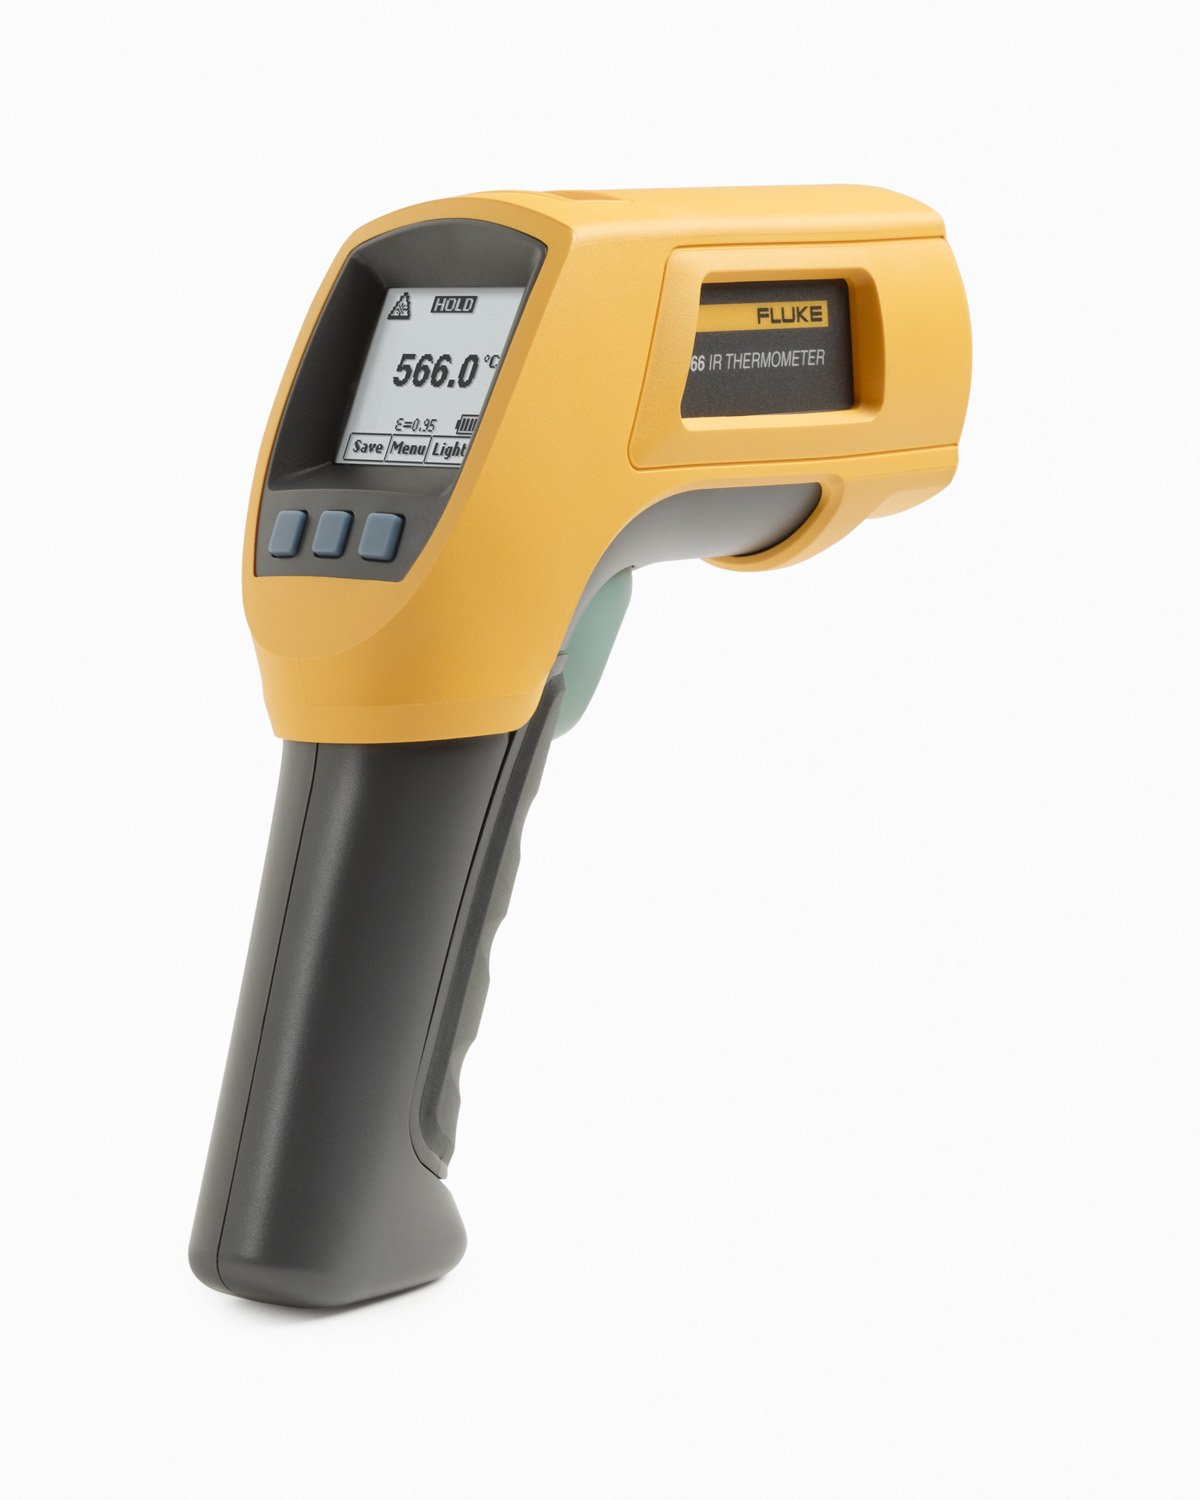 Fluke 566  Dual Infrared Thermometer, -40 to +1202 Degree F Range, Contact/Non Contact by Fluke (Image #6)